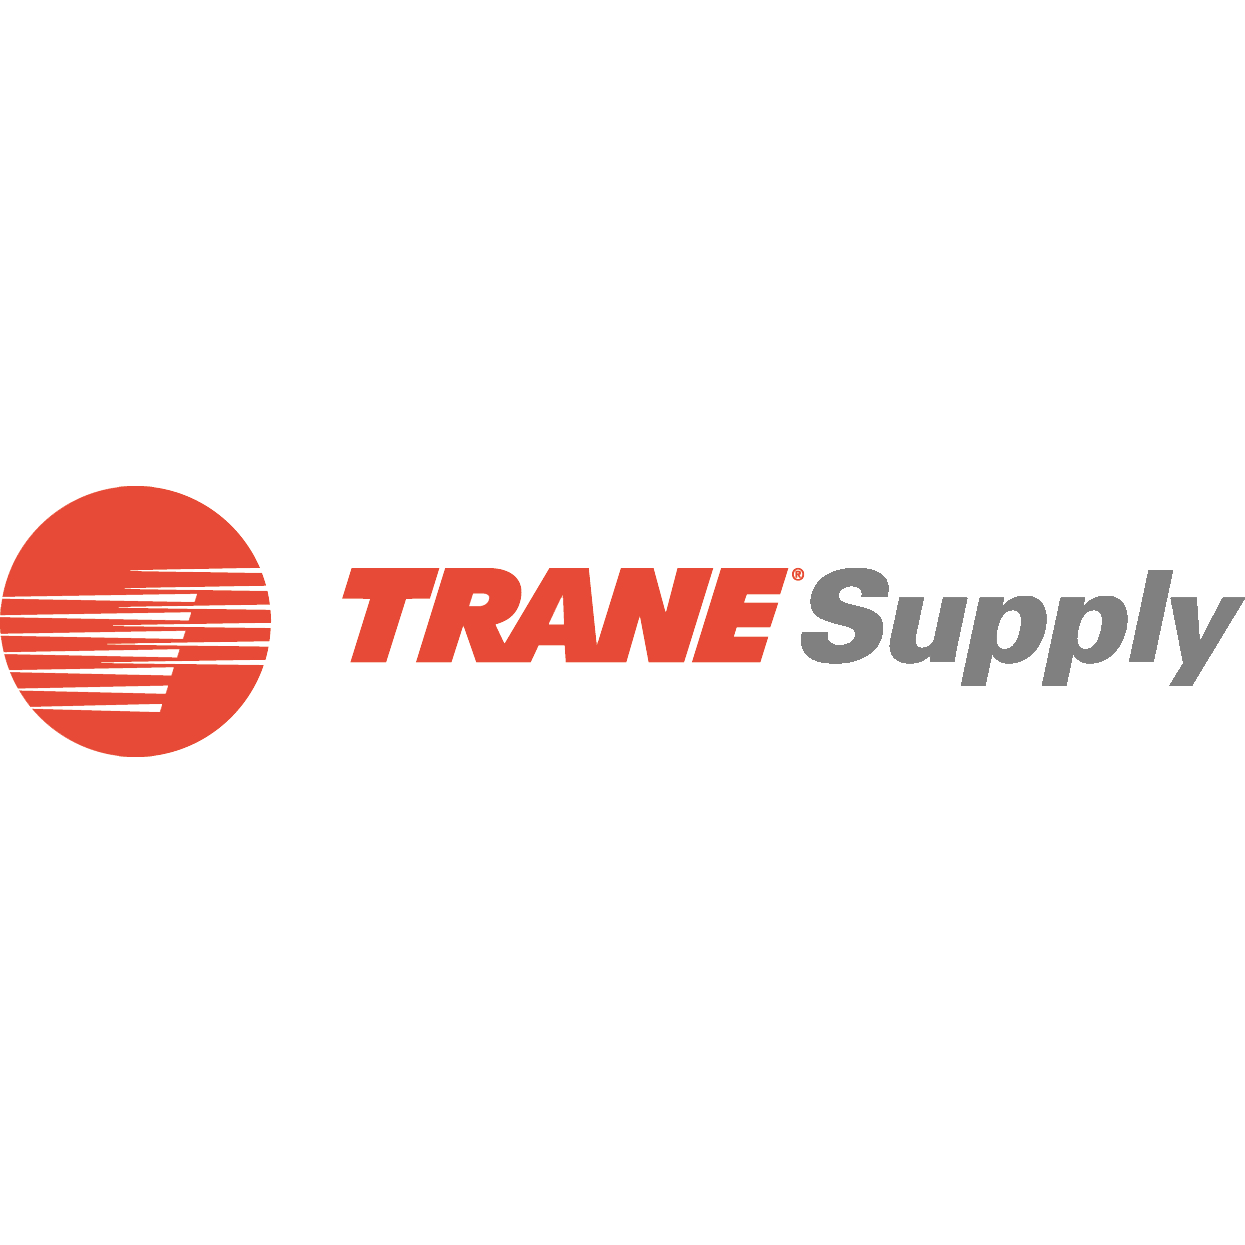 Trane Supply - CLOSED image 3